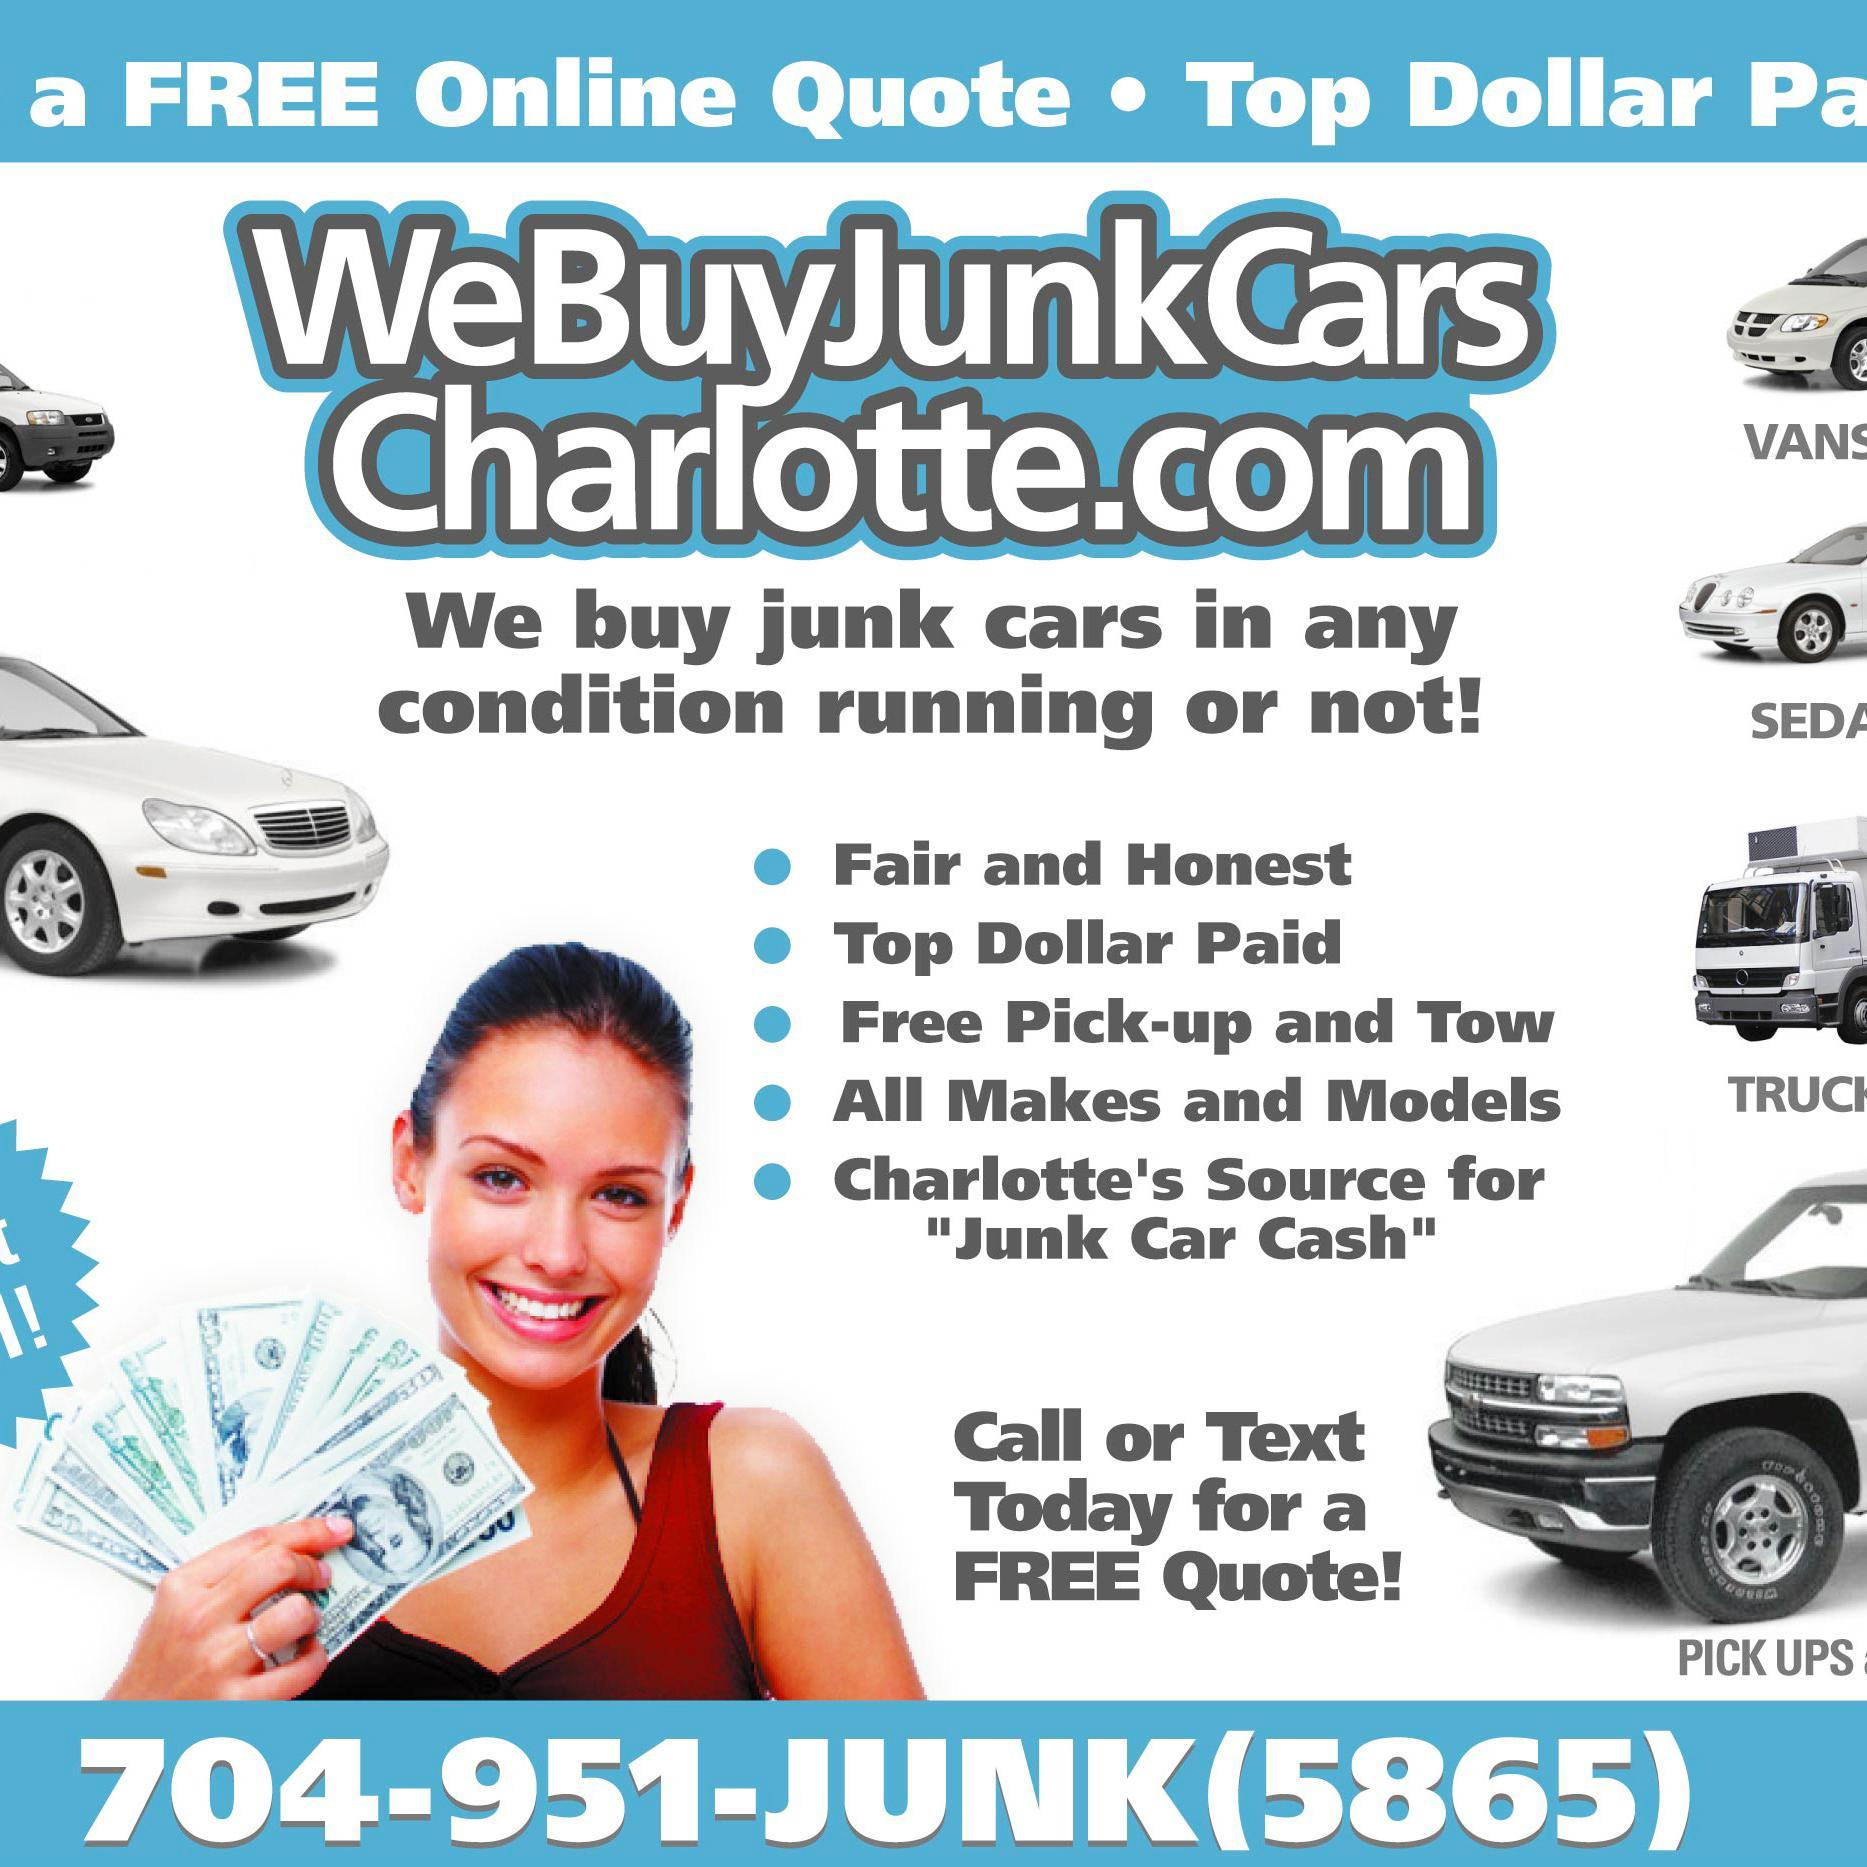 We Buy Junk Cars Clt (@WeBuyJunkCarsNC) | Twitter